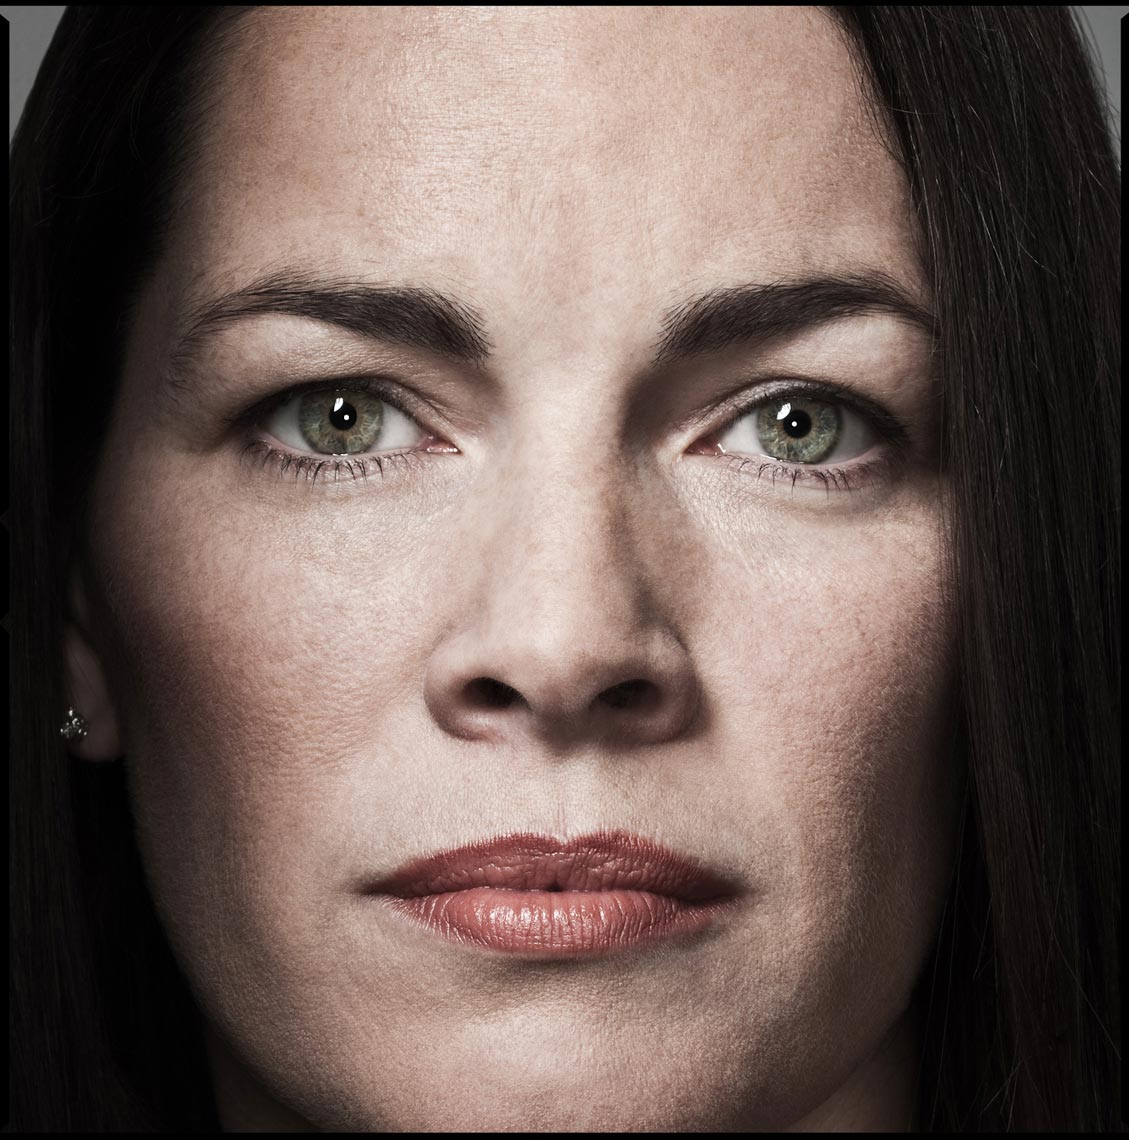 Nancy Kerrigan - New York City, NY - New York Times Magazine